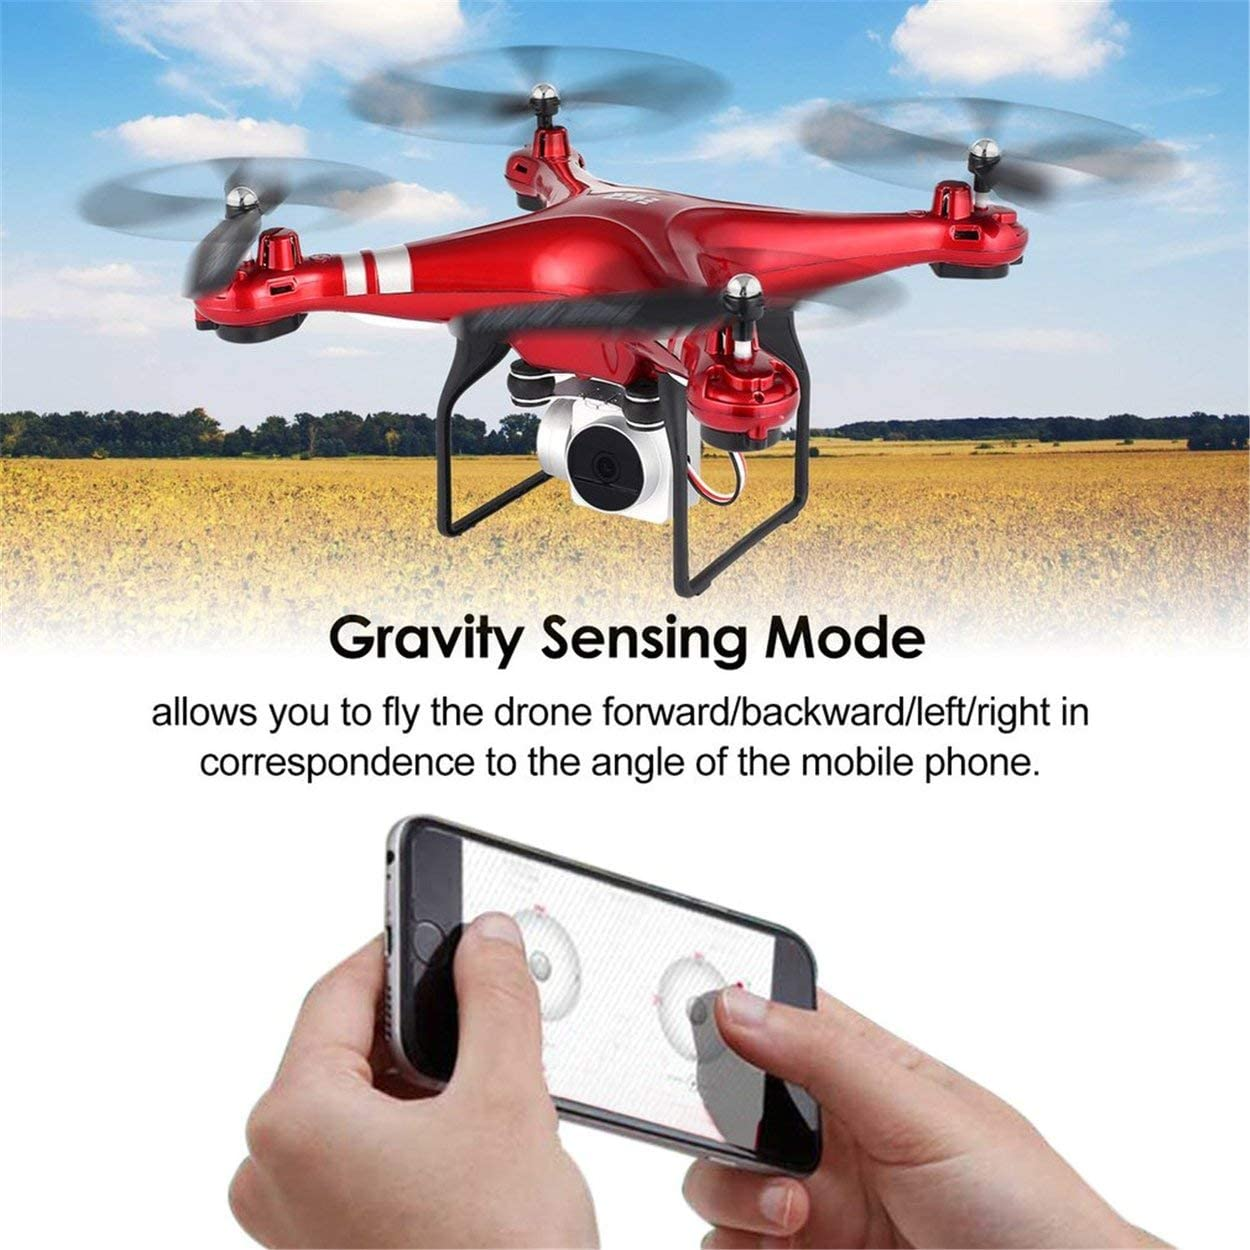 Return Key RC Quadcopter for All People Three Batteries Red Gravity Sense FPV RC Drones with 1080p HD Wide Angle WiFi Camera Live Video Headless Mode